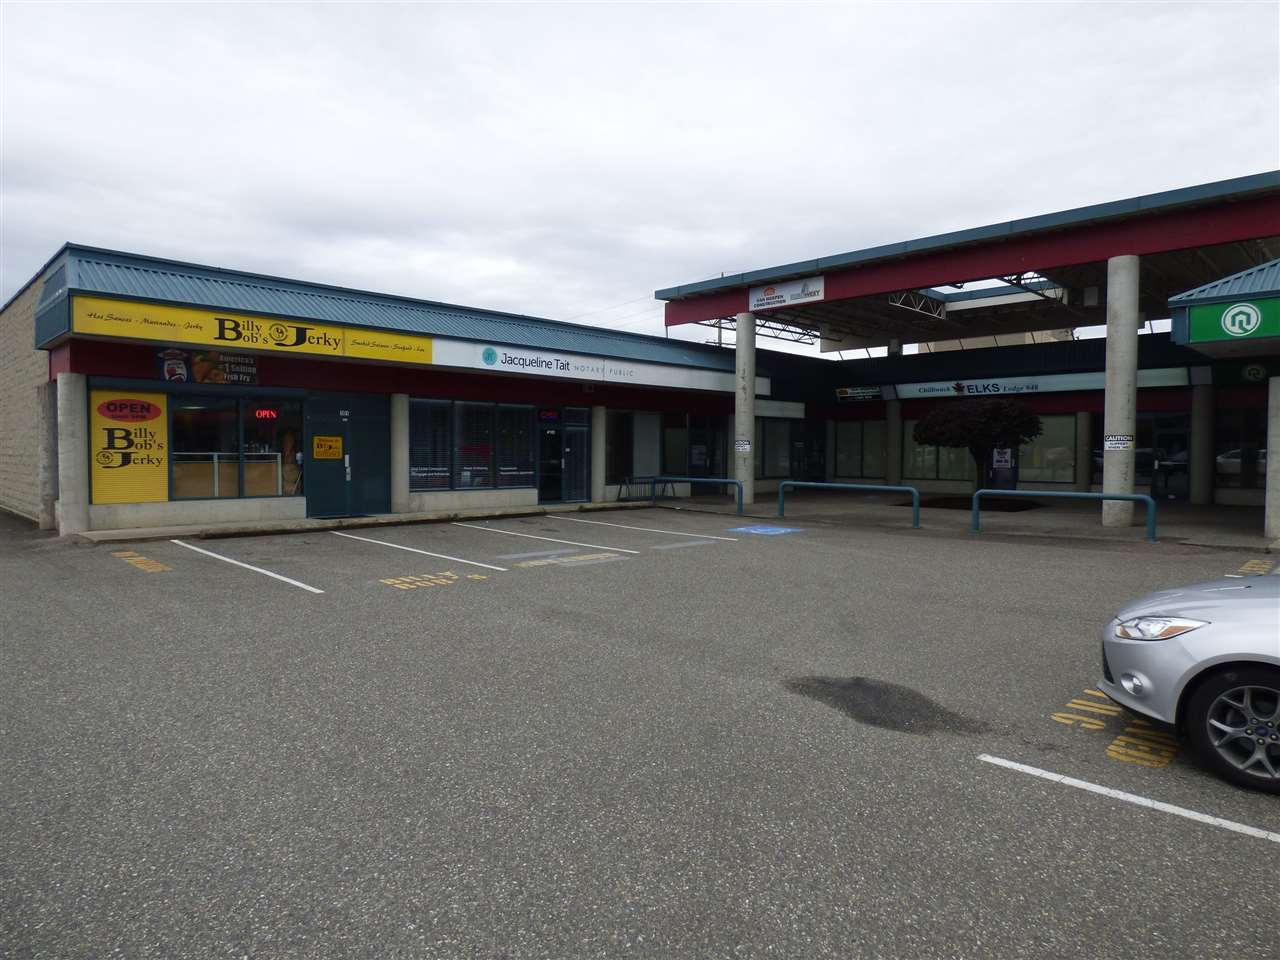 Main Photo: 103 A 8645 YOUNG Road in Chilliwack: Chilliwack W Young-Well Industrial for lease : MLS(r) # C8010936